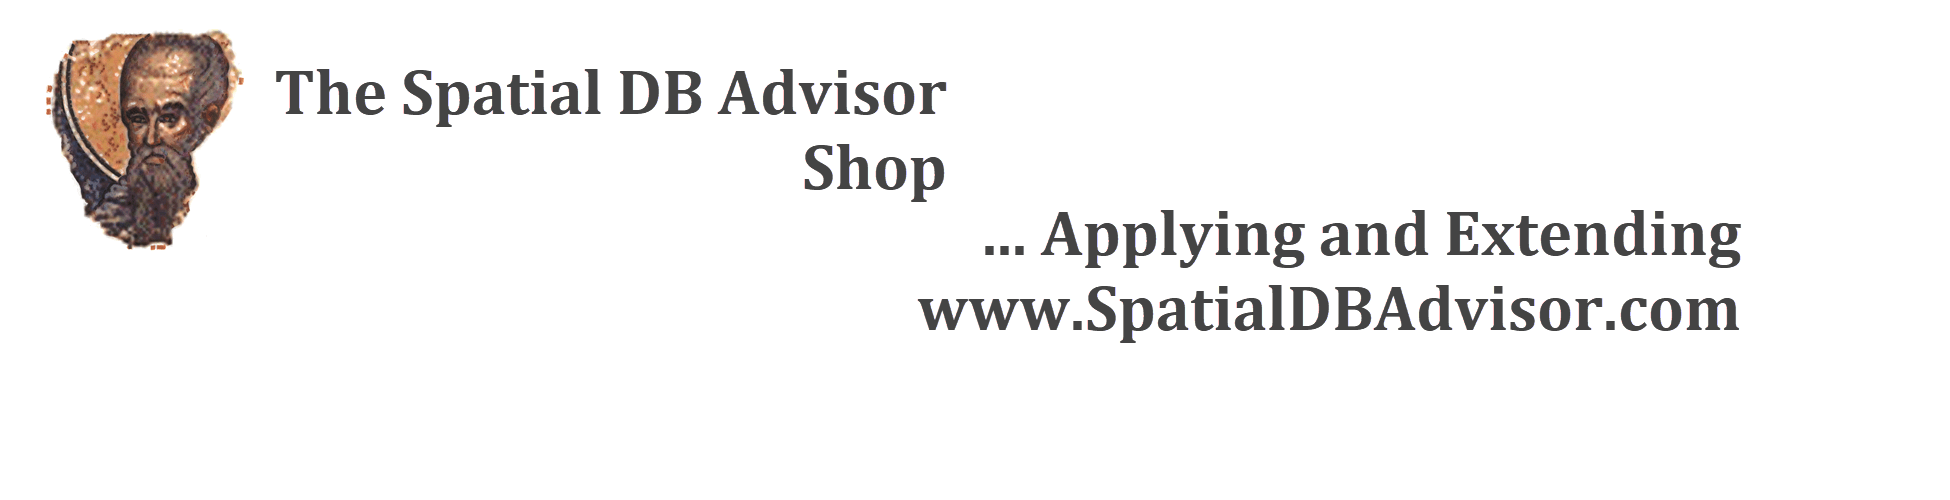 The Spatial DB Advisor Shop